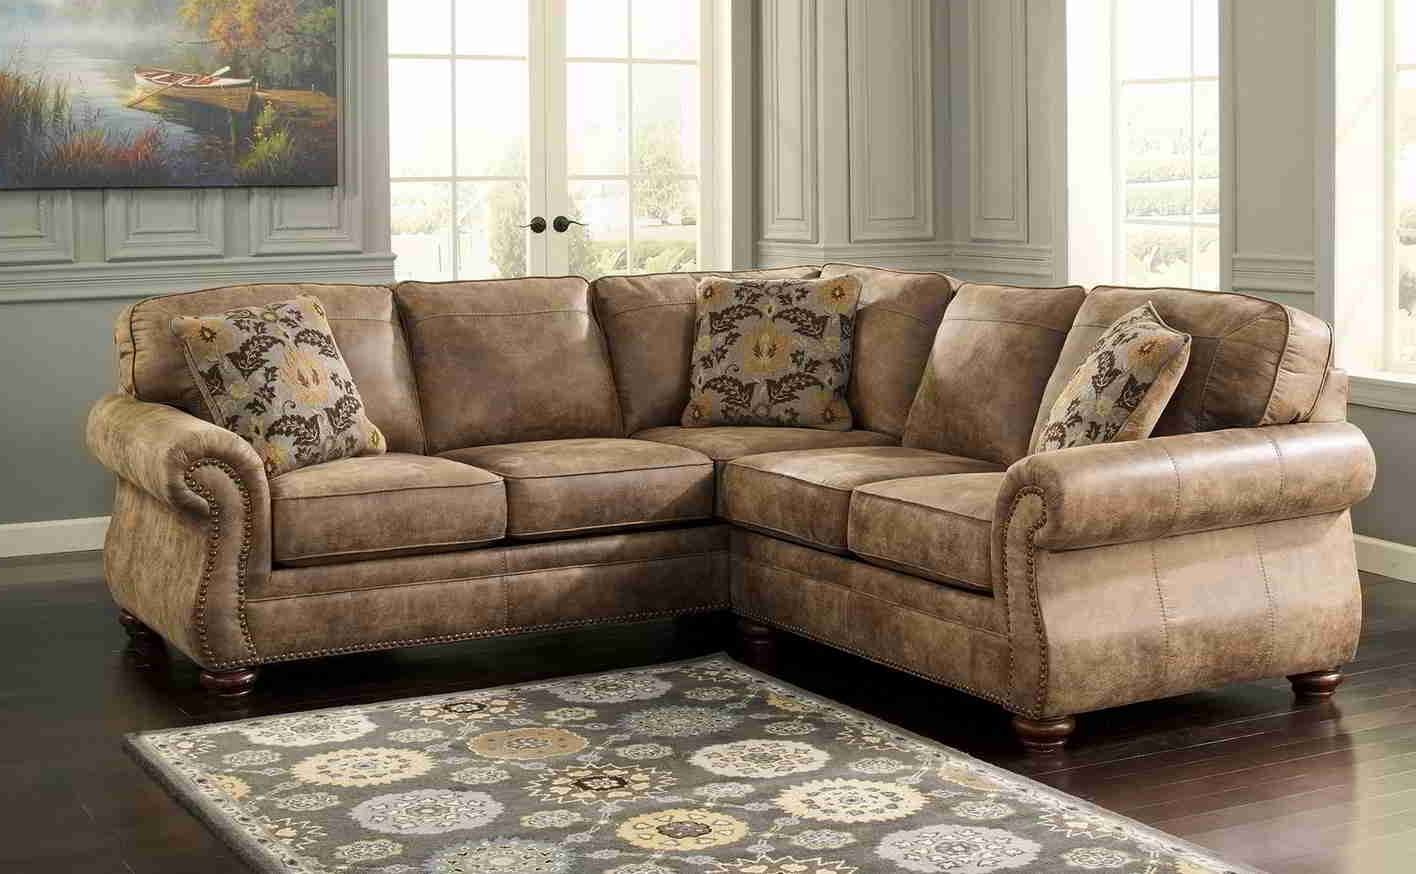 Best Wide Seat Sectional Sofas 95 About Remodel High Back Throughout Most Recent Sectional Sofas With High Backs (View 5 of 20)